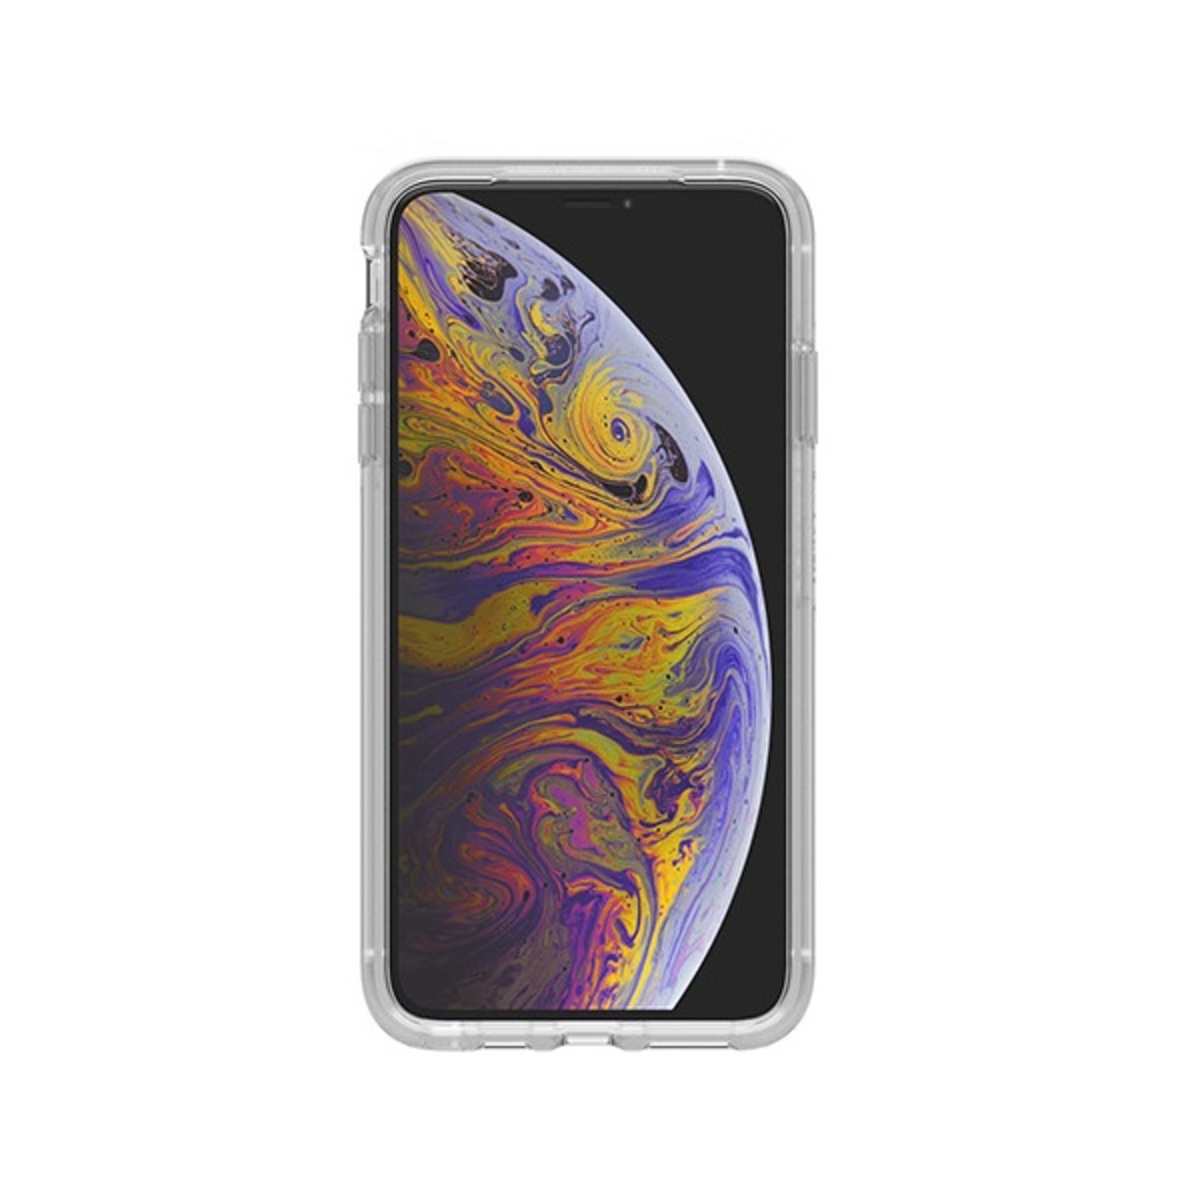 SYMMETRY SLEEK PROTECTION CASE FOR IPHONE XS MAX - CLEAR ( 77-60085 )